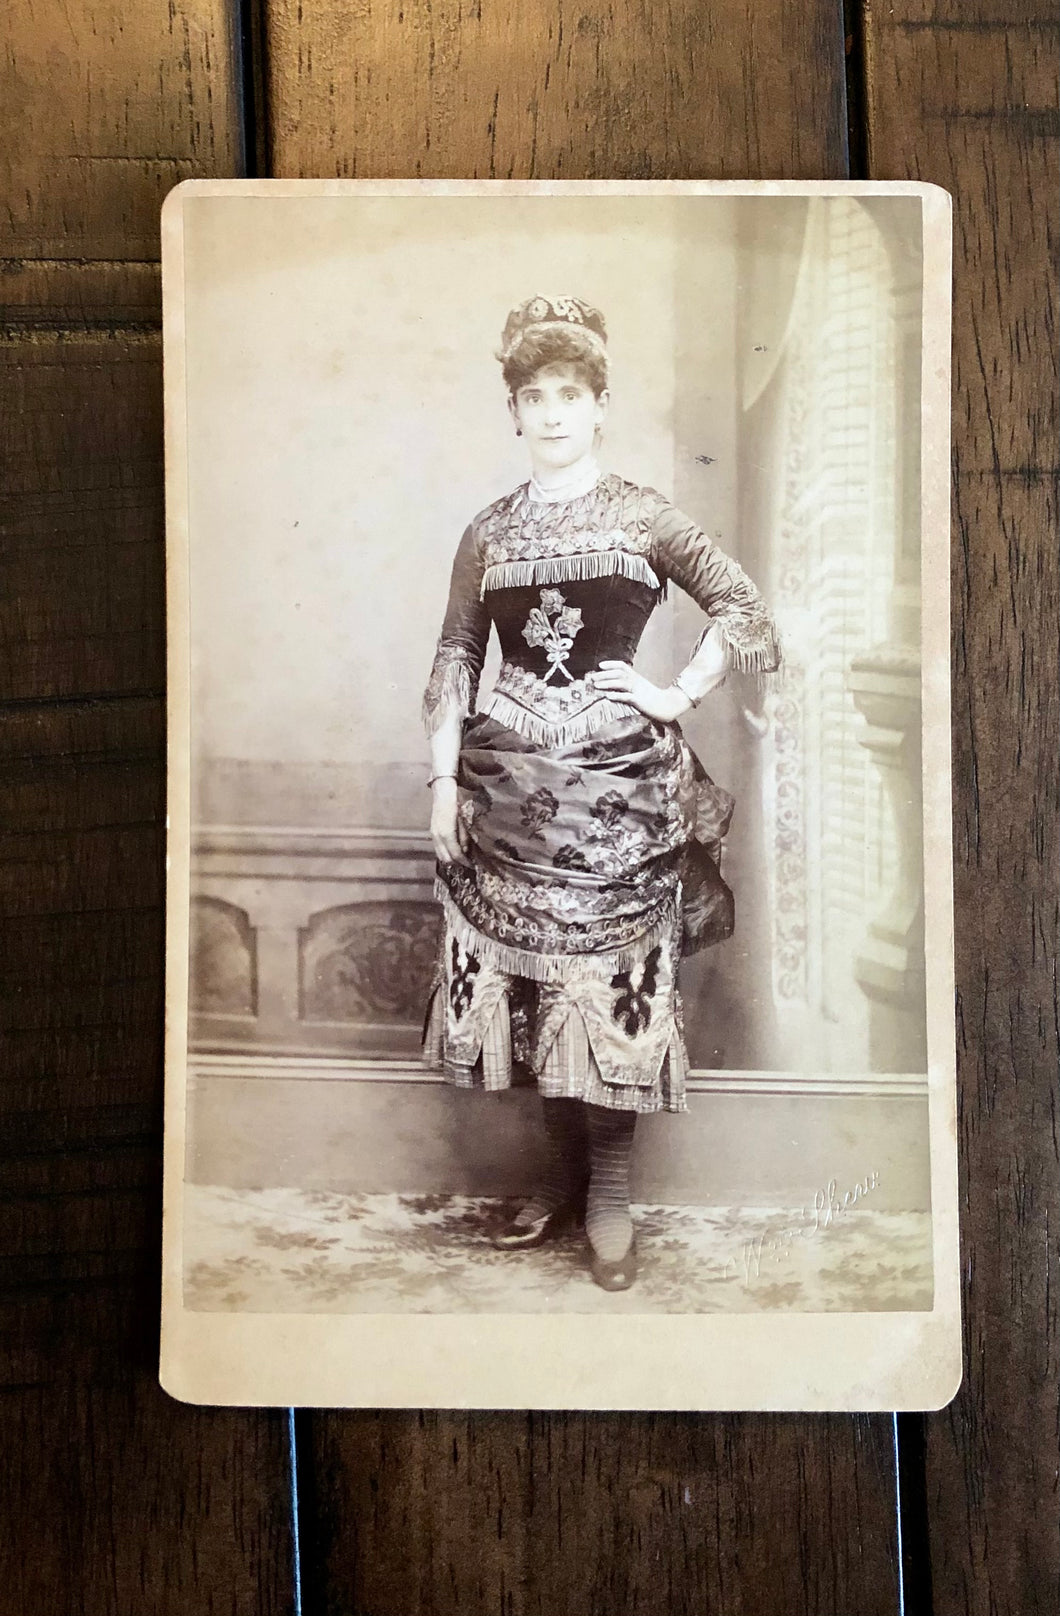 San Francisco Photographer SHEW  Woman In Unusual Ethic? Dress & Hat 1800s Photo